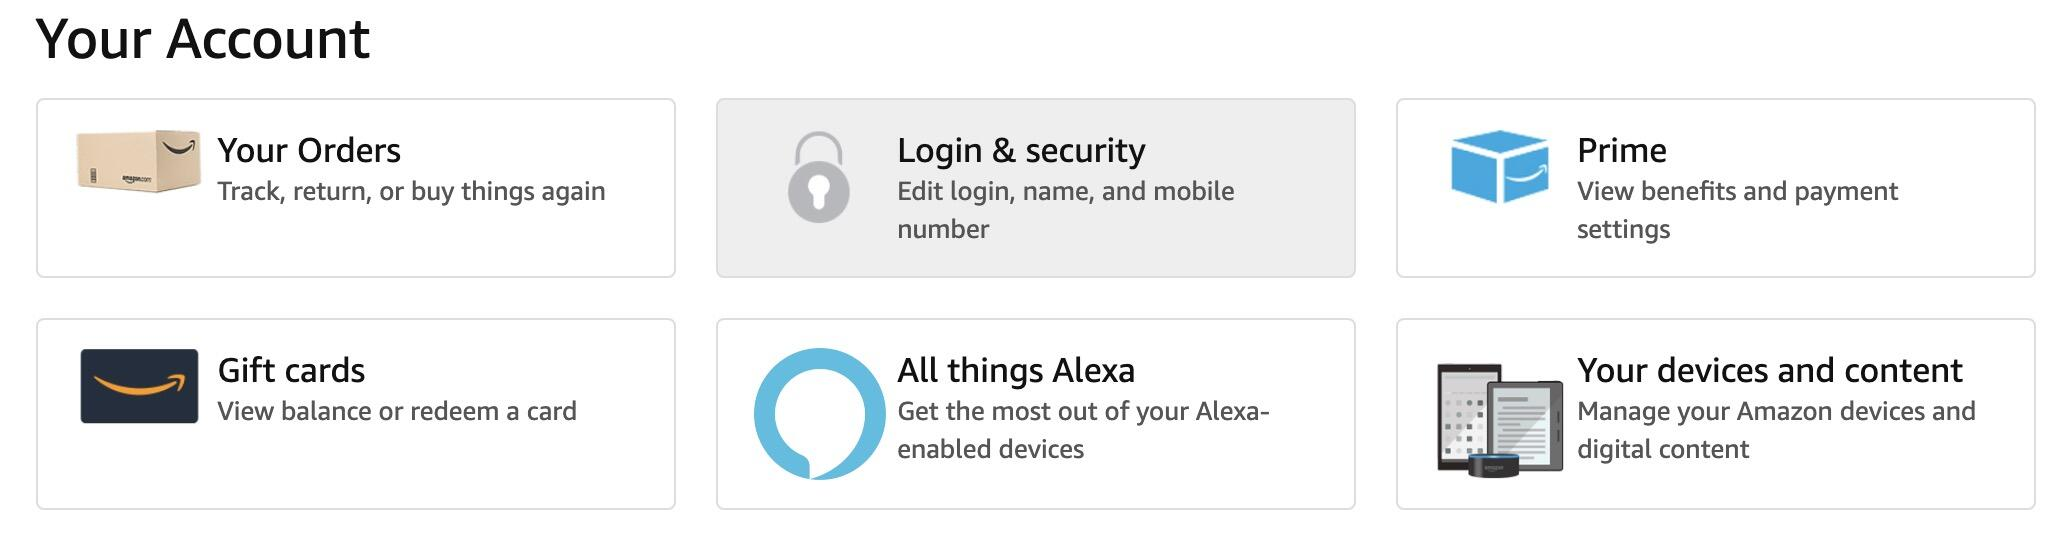 amazon-login-and-security